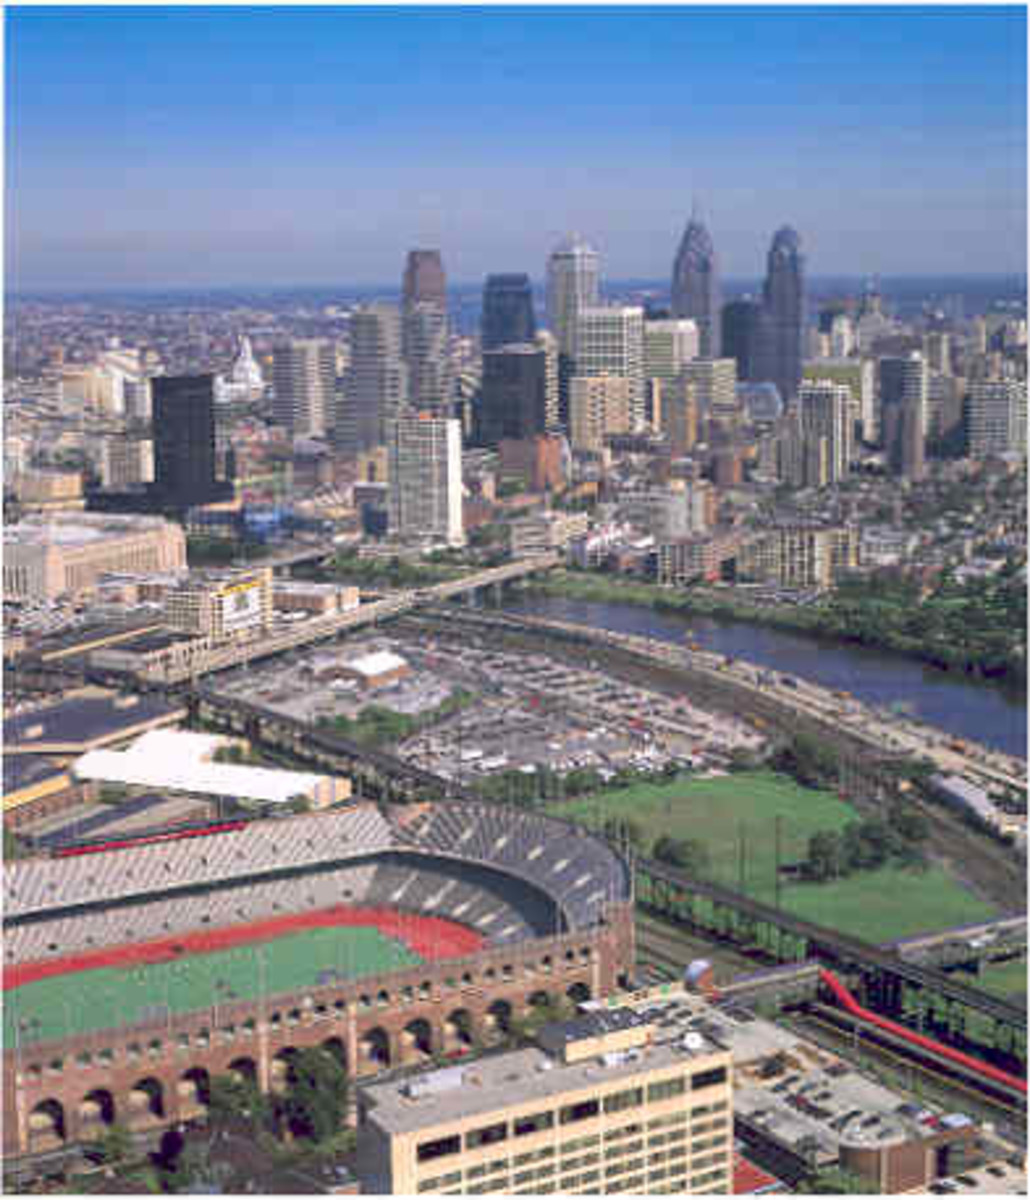 Best places to visit in pennsylvania hubpages for Places to visit philadelphia